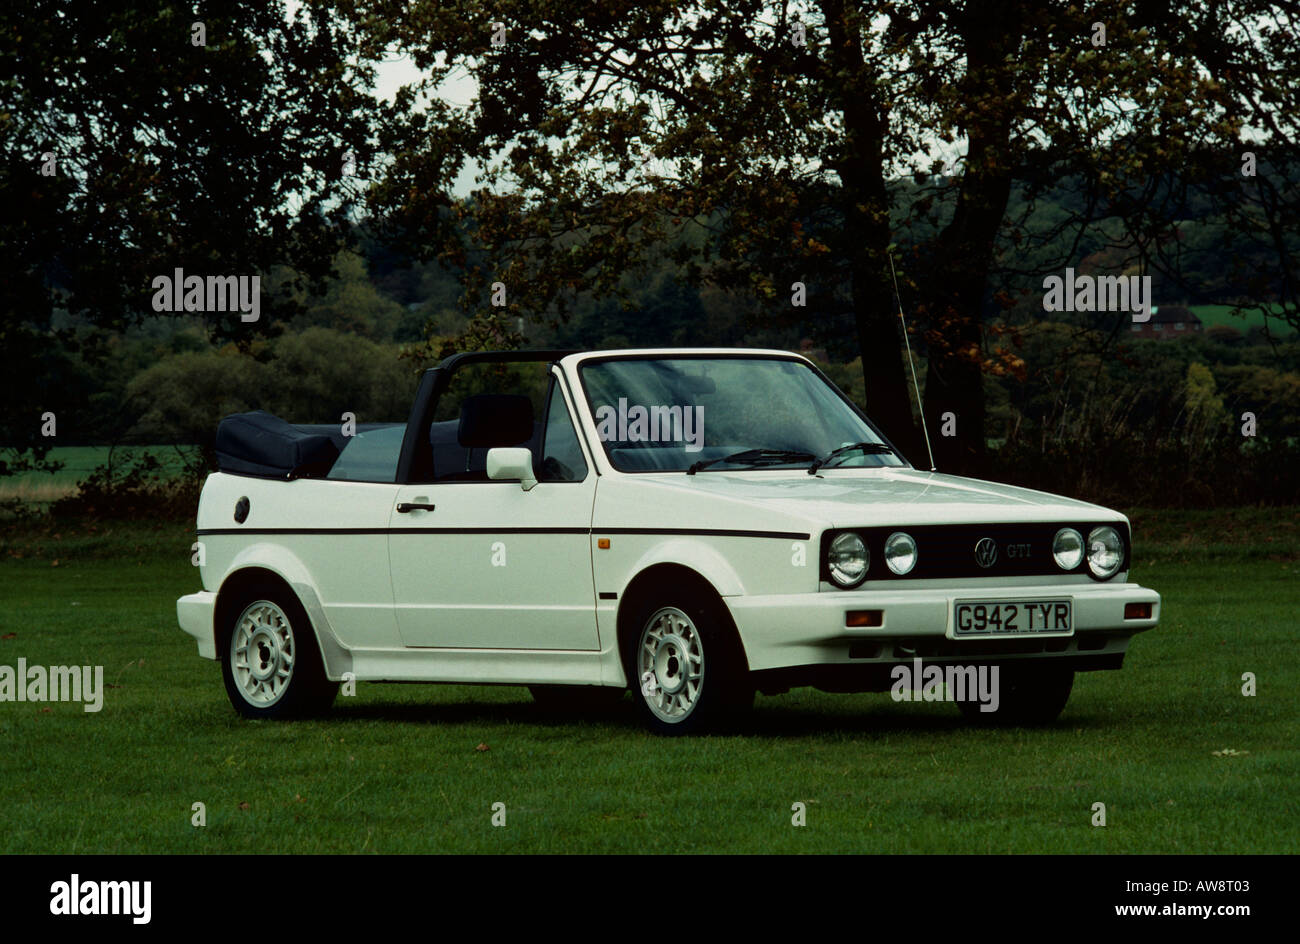 volkswagen golf mk1 gti cabriolet mk1 cabriolet 1980 to 1992 stock photo royalty free image. Black Bedroom Furniture Sets. Home Design Ideas